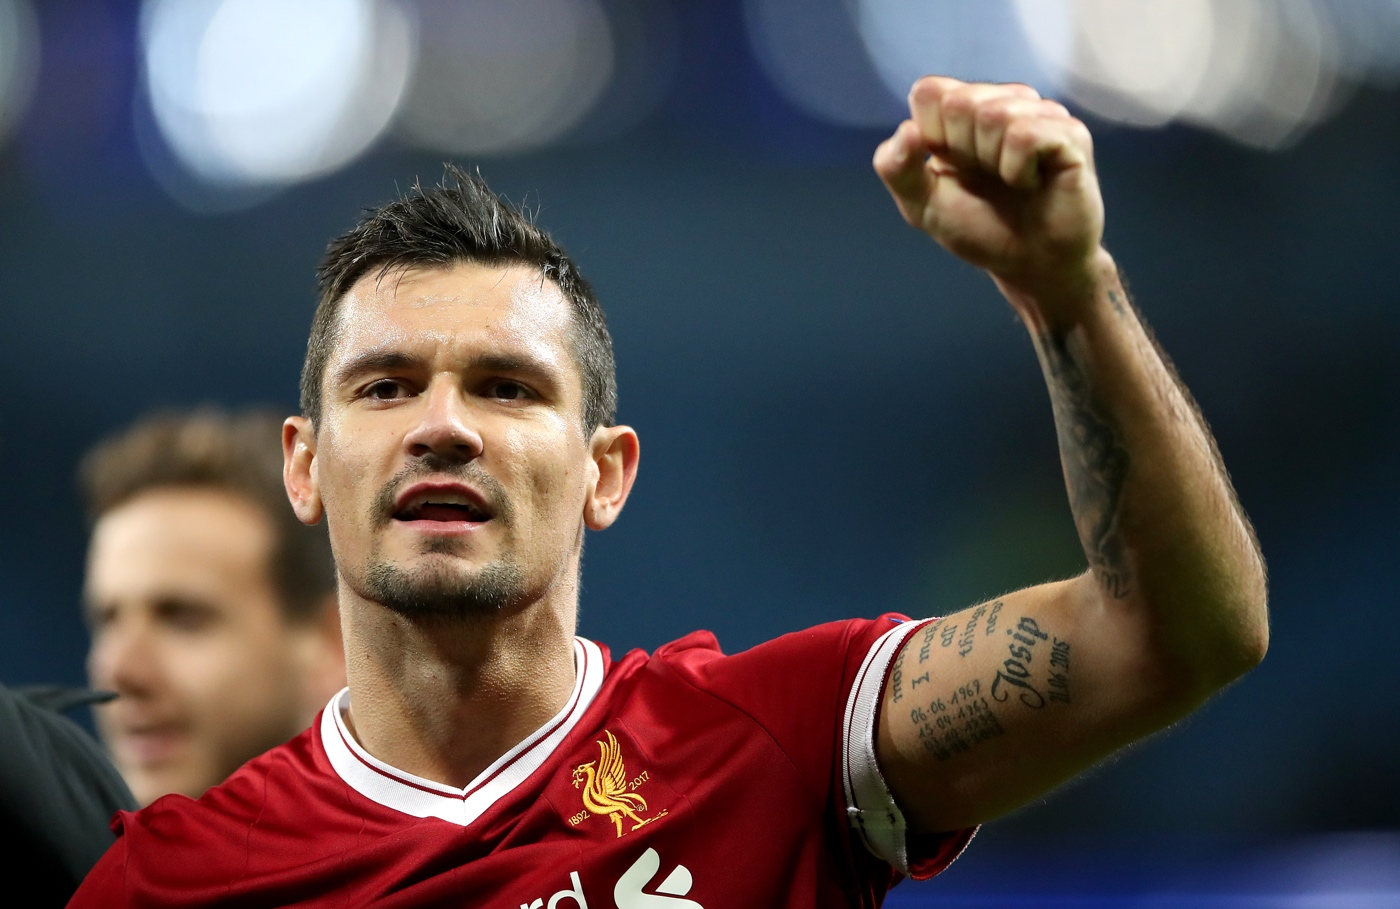 Lovren set to state claim?